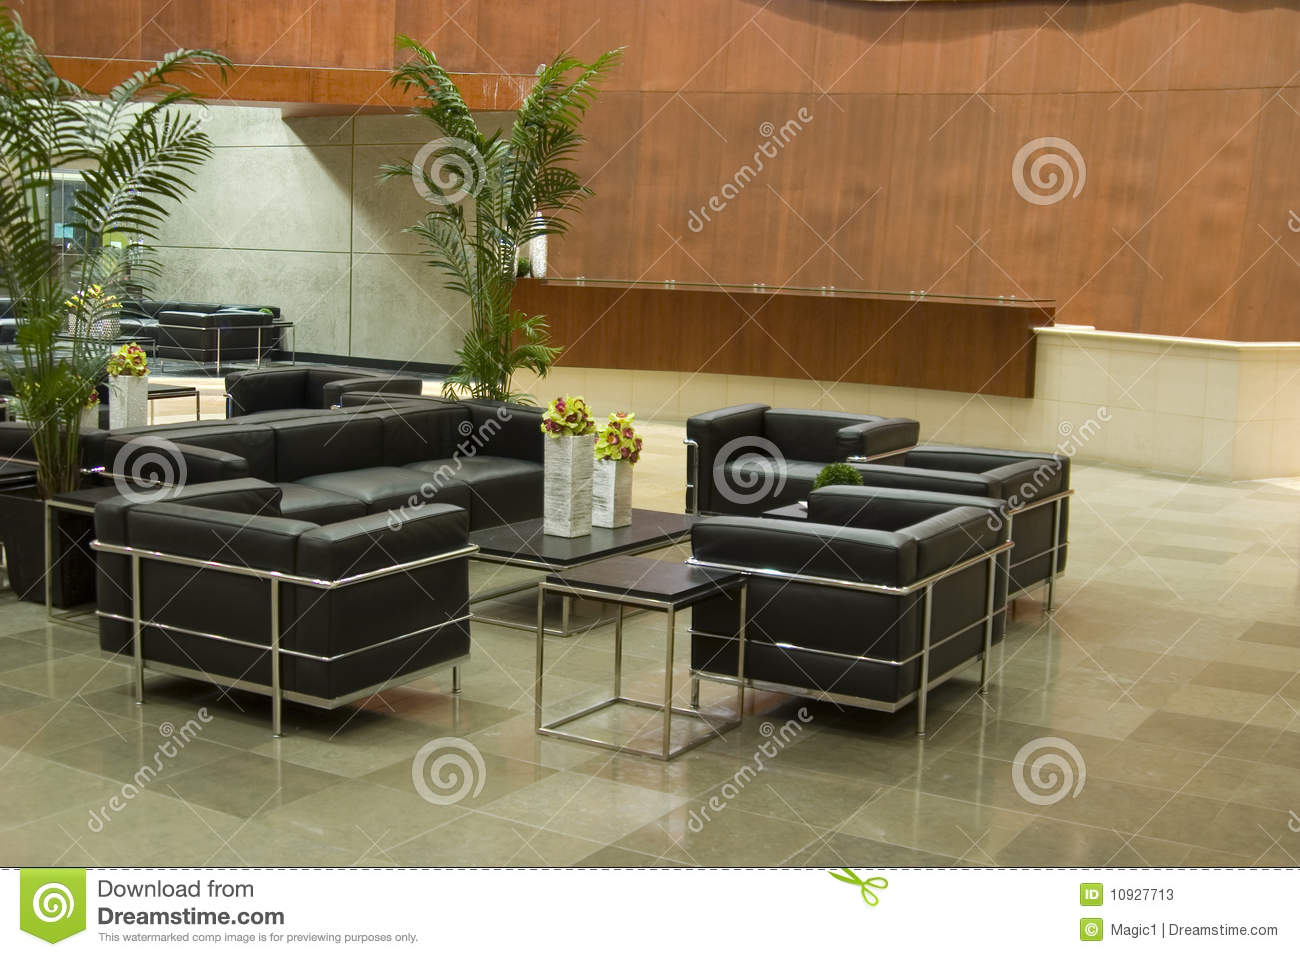 office lobby chairs a chair in room contemporary stock photos image 10927713